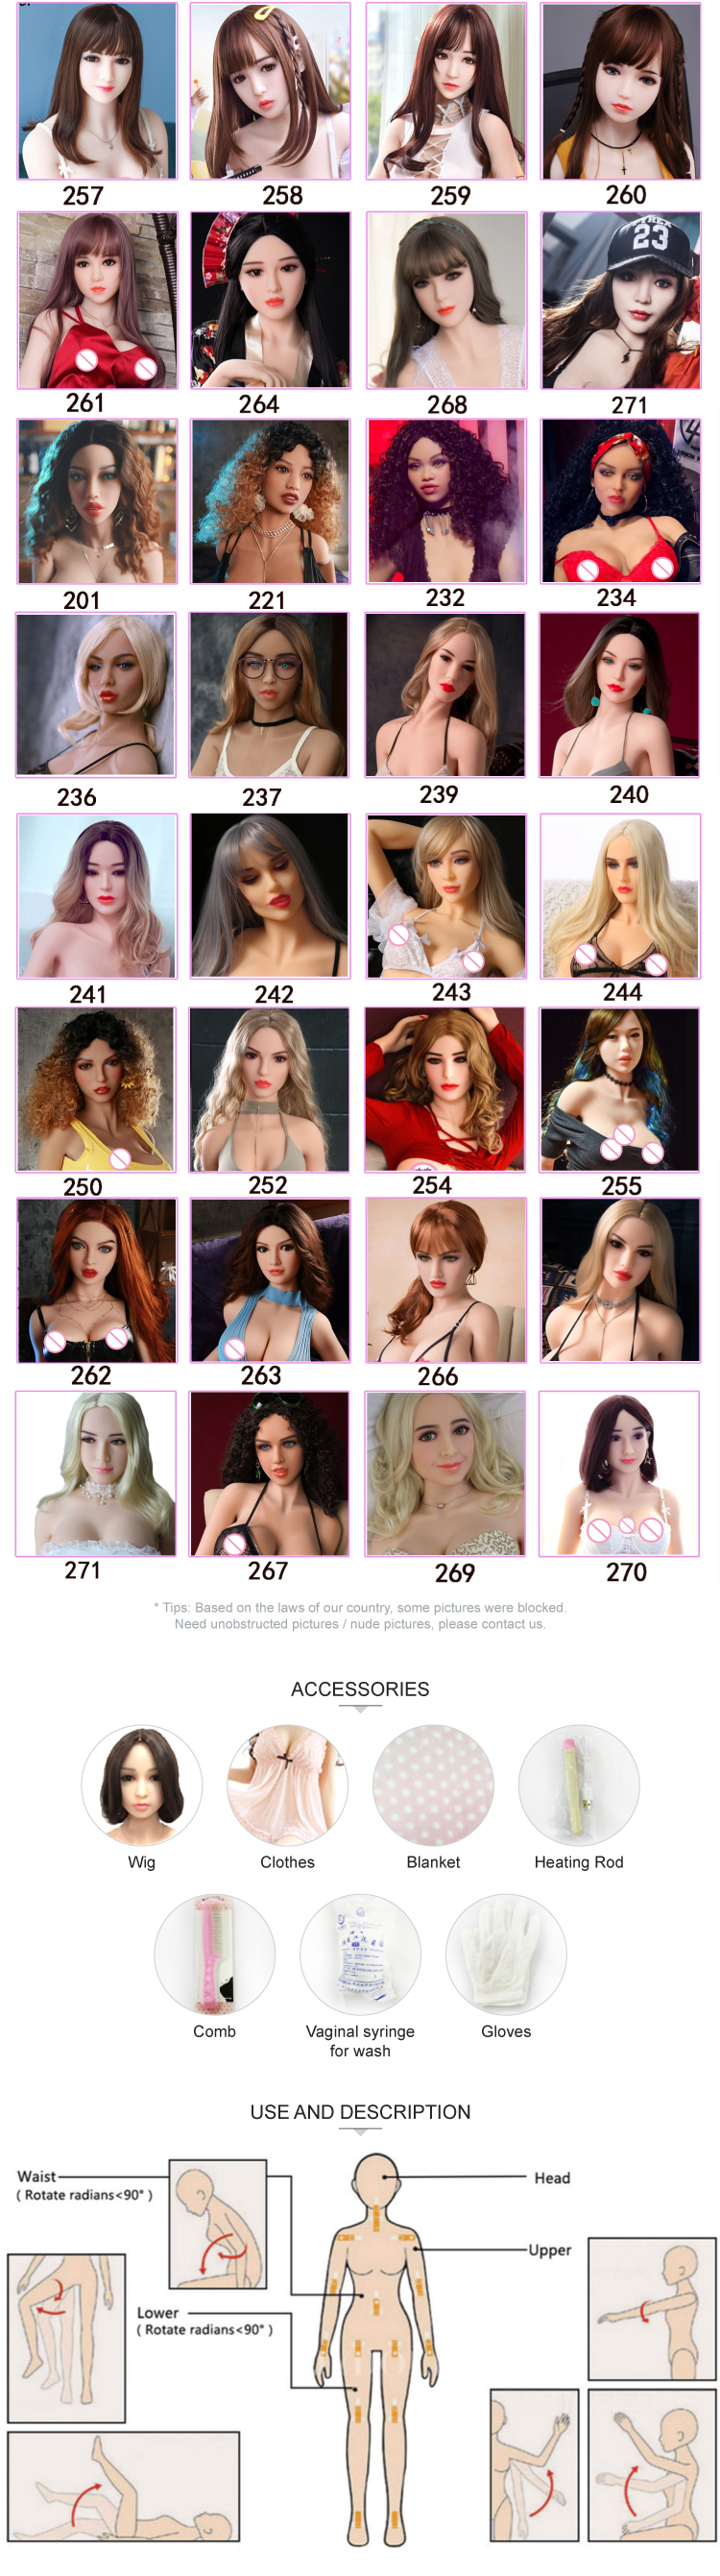 Hello Miss 166 cm 5 ft 5.3 in Curly pubic hair white skin smile revealing teeth curly girl silicone sex doll for men